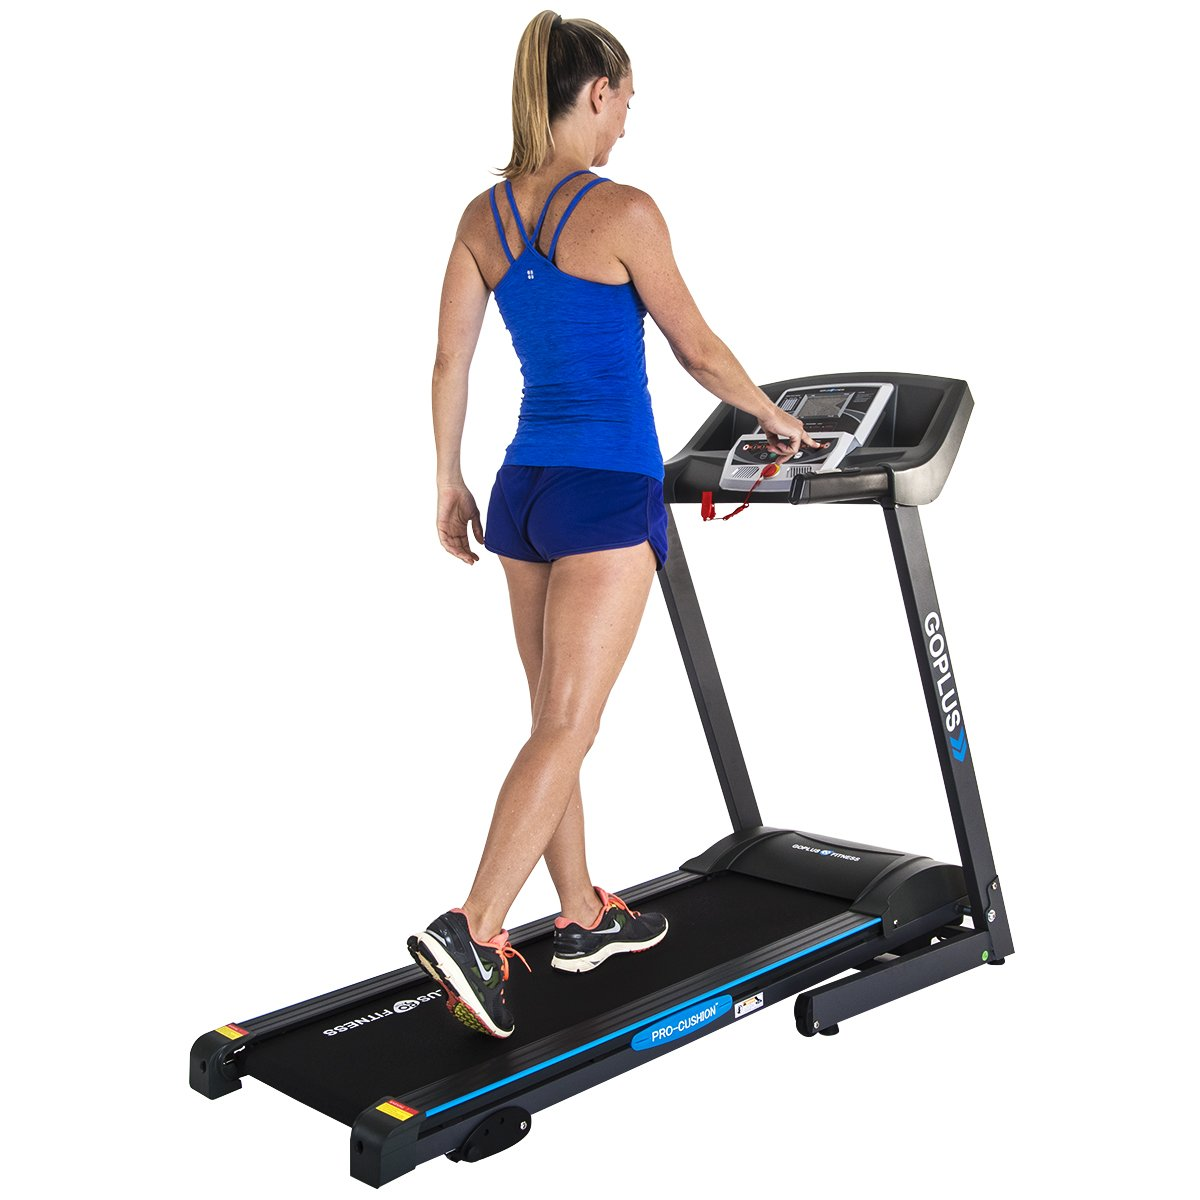 Goplus 2.25HP Folding Treadmill Electric Support Motorized Power Running Fitness Jogging Incline Machine g Fitness Jogging Incline Machine Fitness Jogging Incline Machine Black Jaguar Ⅱ(Classic) by Goplus (Image #2)